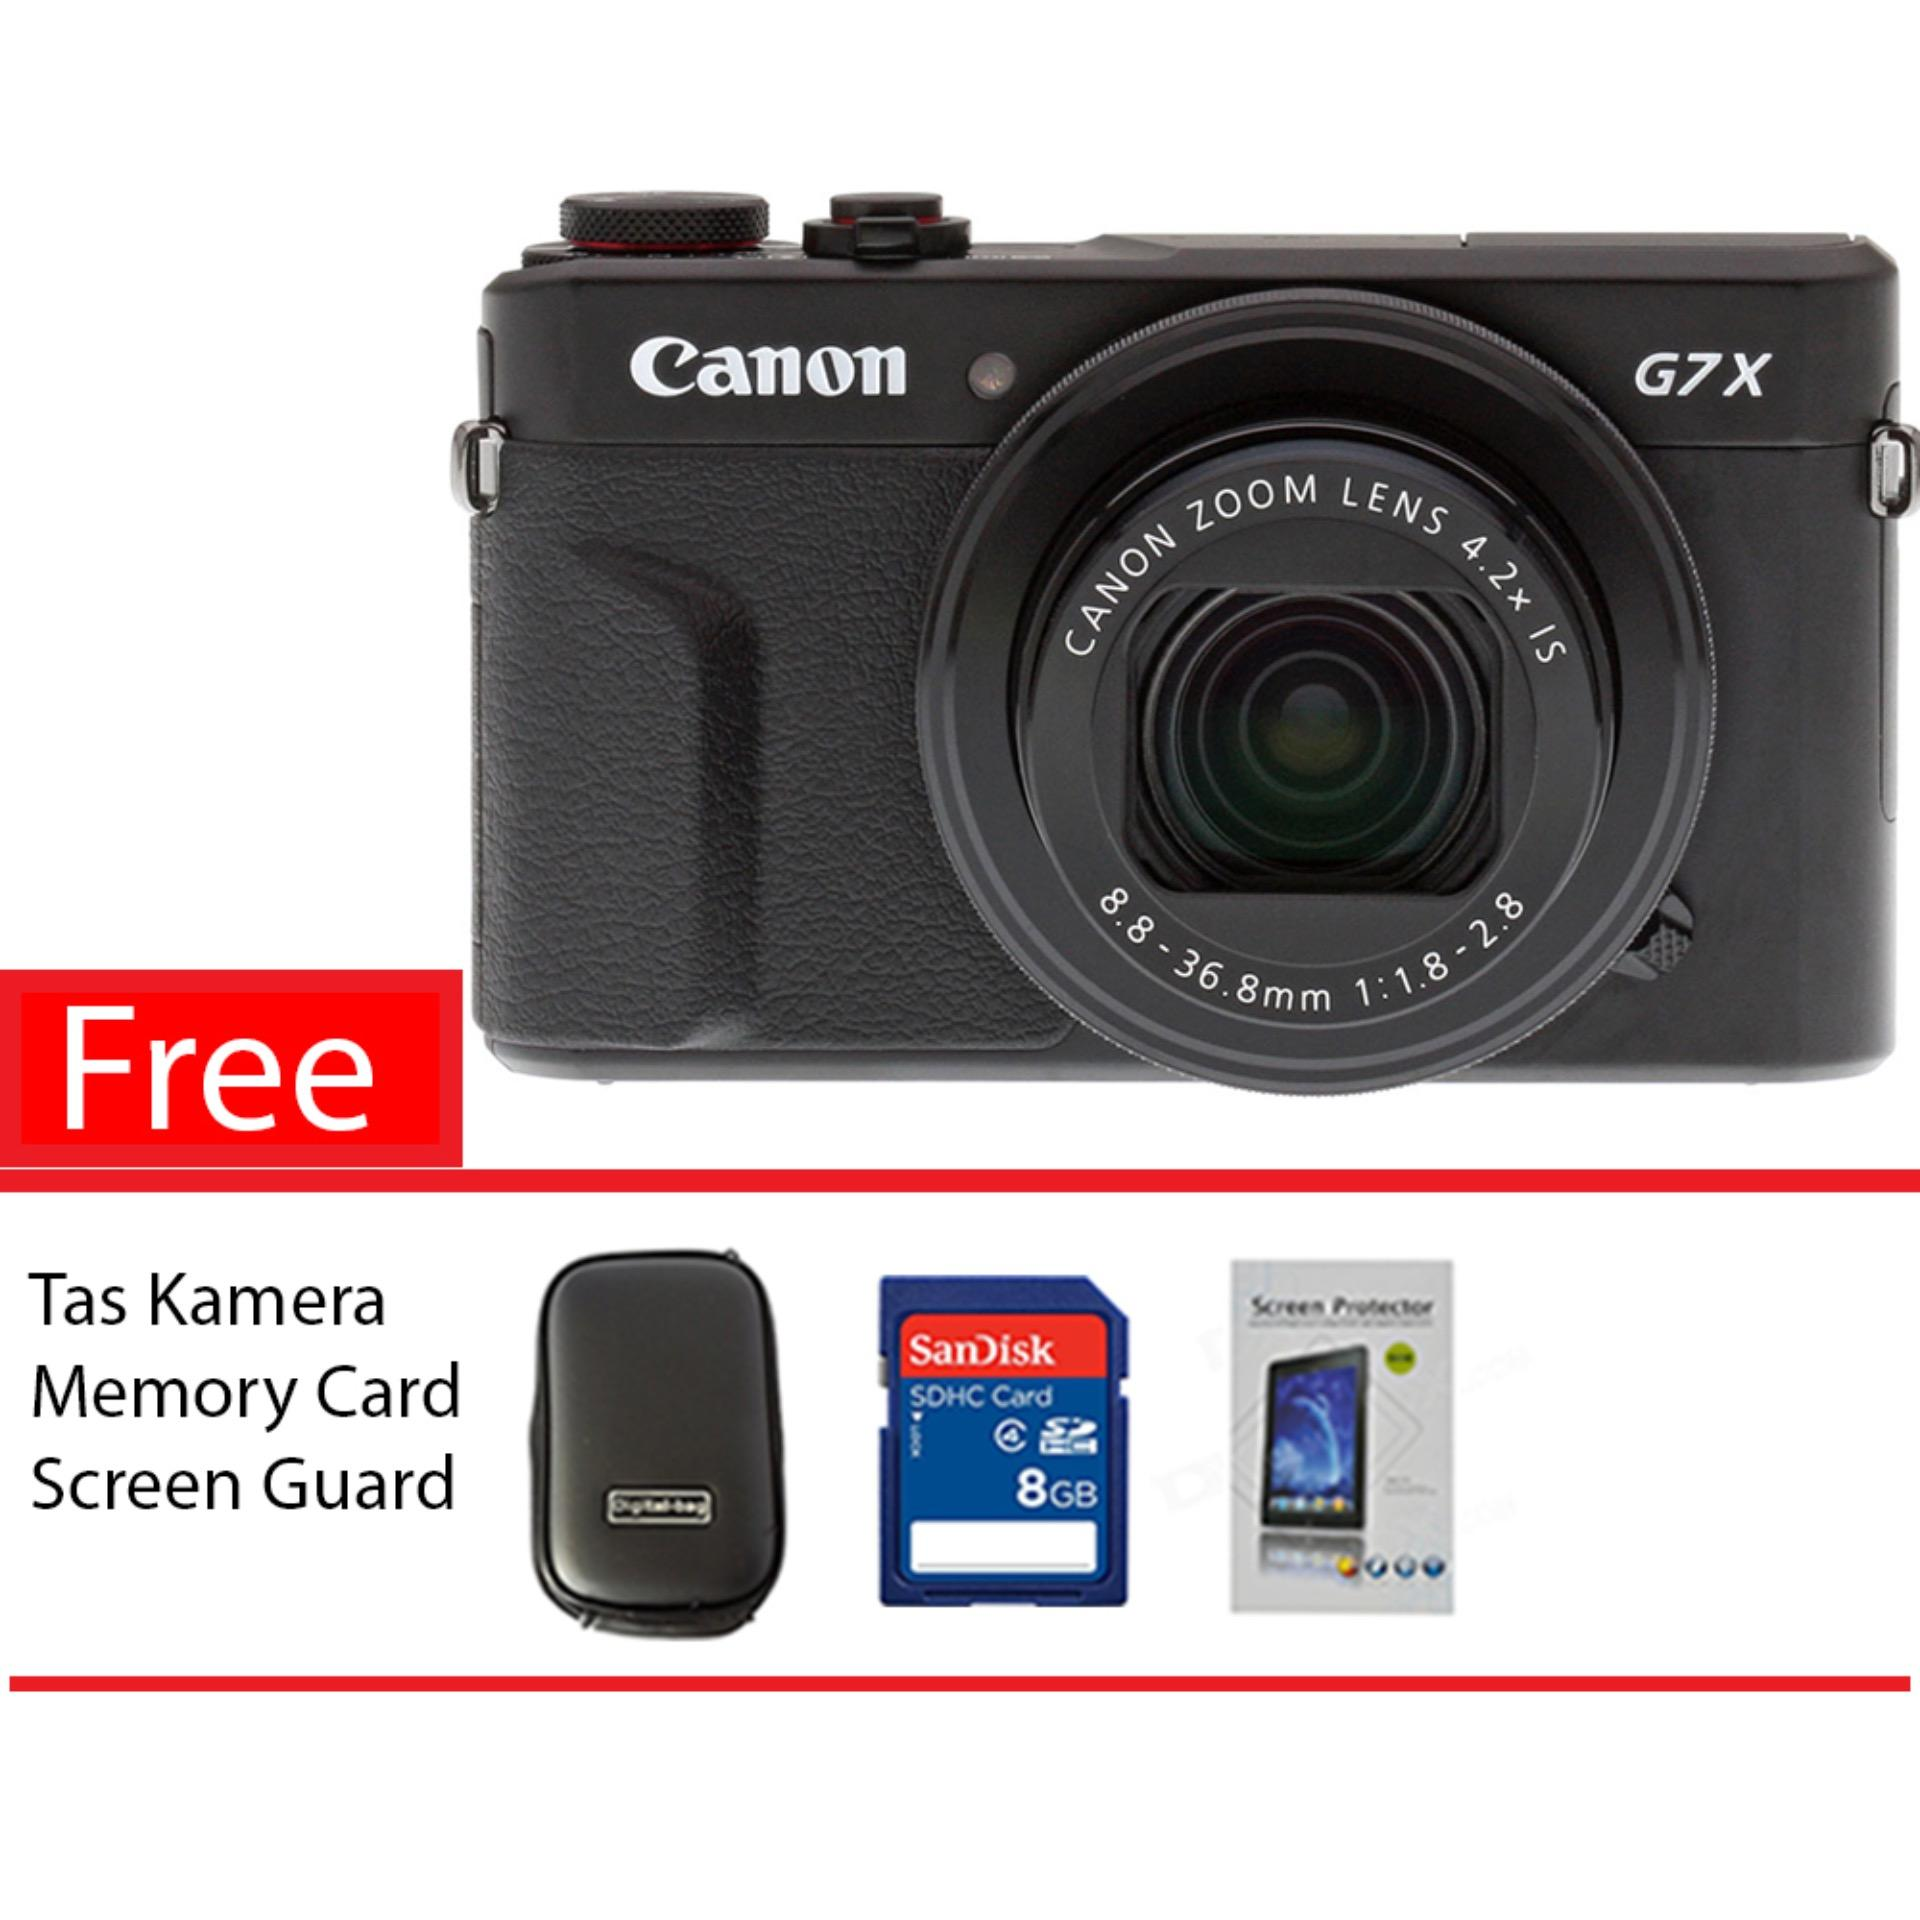 Toko Canon Powershot G7X Mark Ii 20 1Mp Digital Camera Hitam Free Memory Card Screen Guard Tas Kamera Yang Bisa Kredit